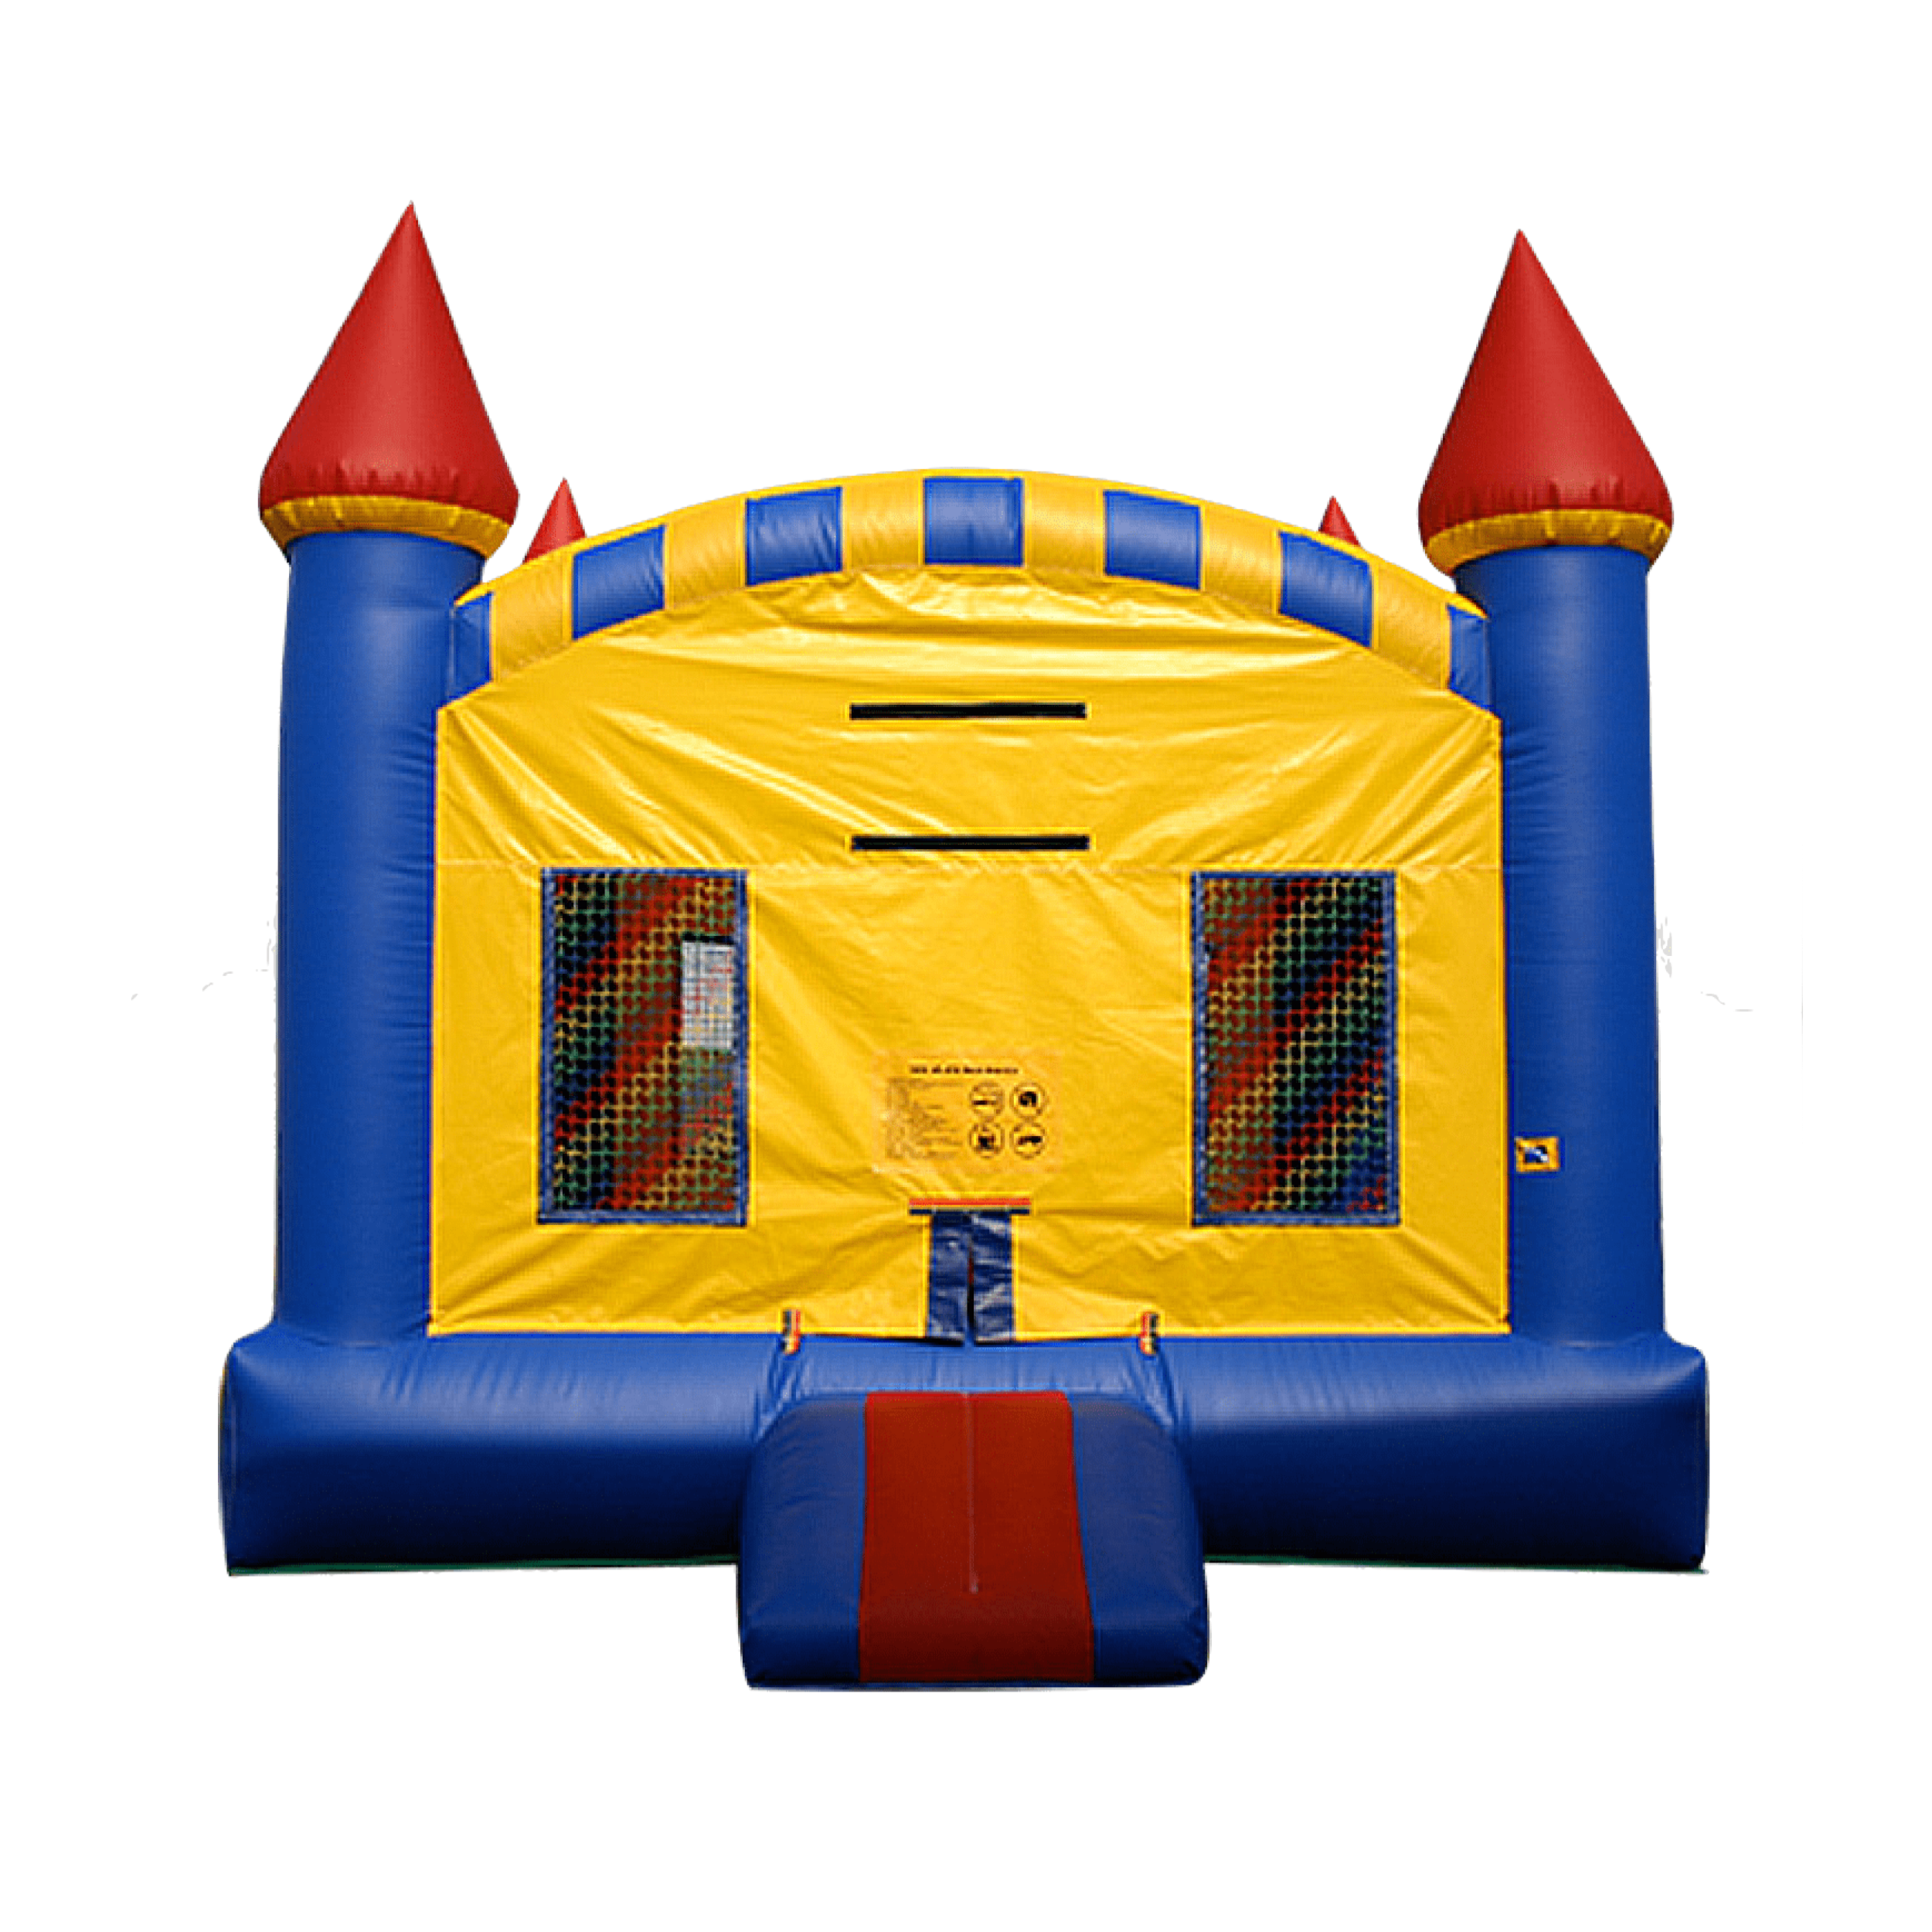 Bounce house png. Syracuse ny and slide